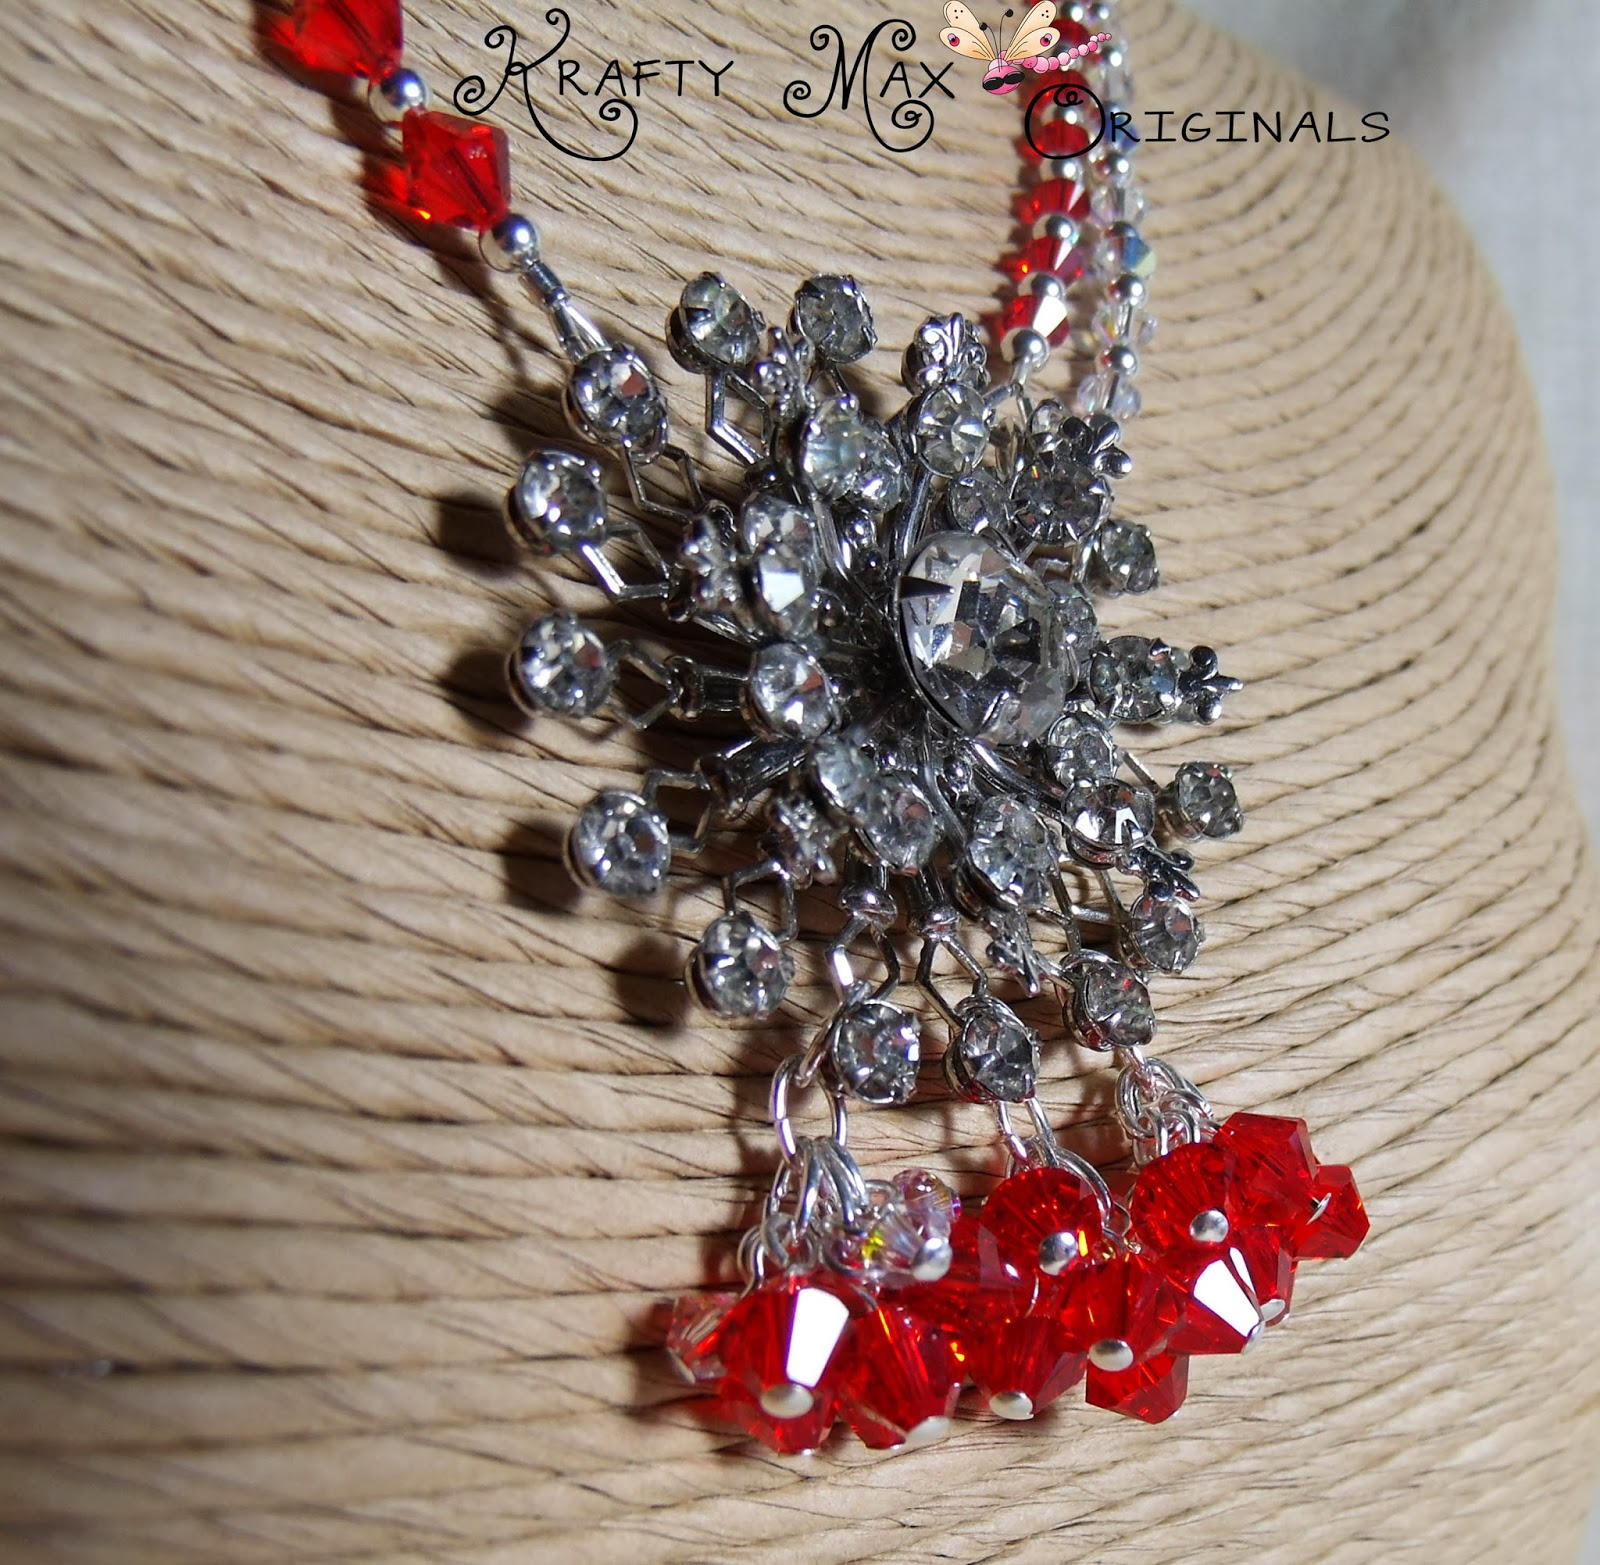 http://www.artfire.com/ext/shop/product_view/KraftyMax/4583522/Red_and_Swarovski_Crystal_StarBURST_Necklace_Set/Jewelry/Sets/Crystal